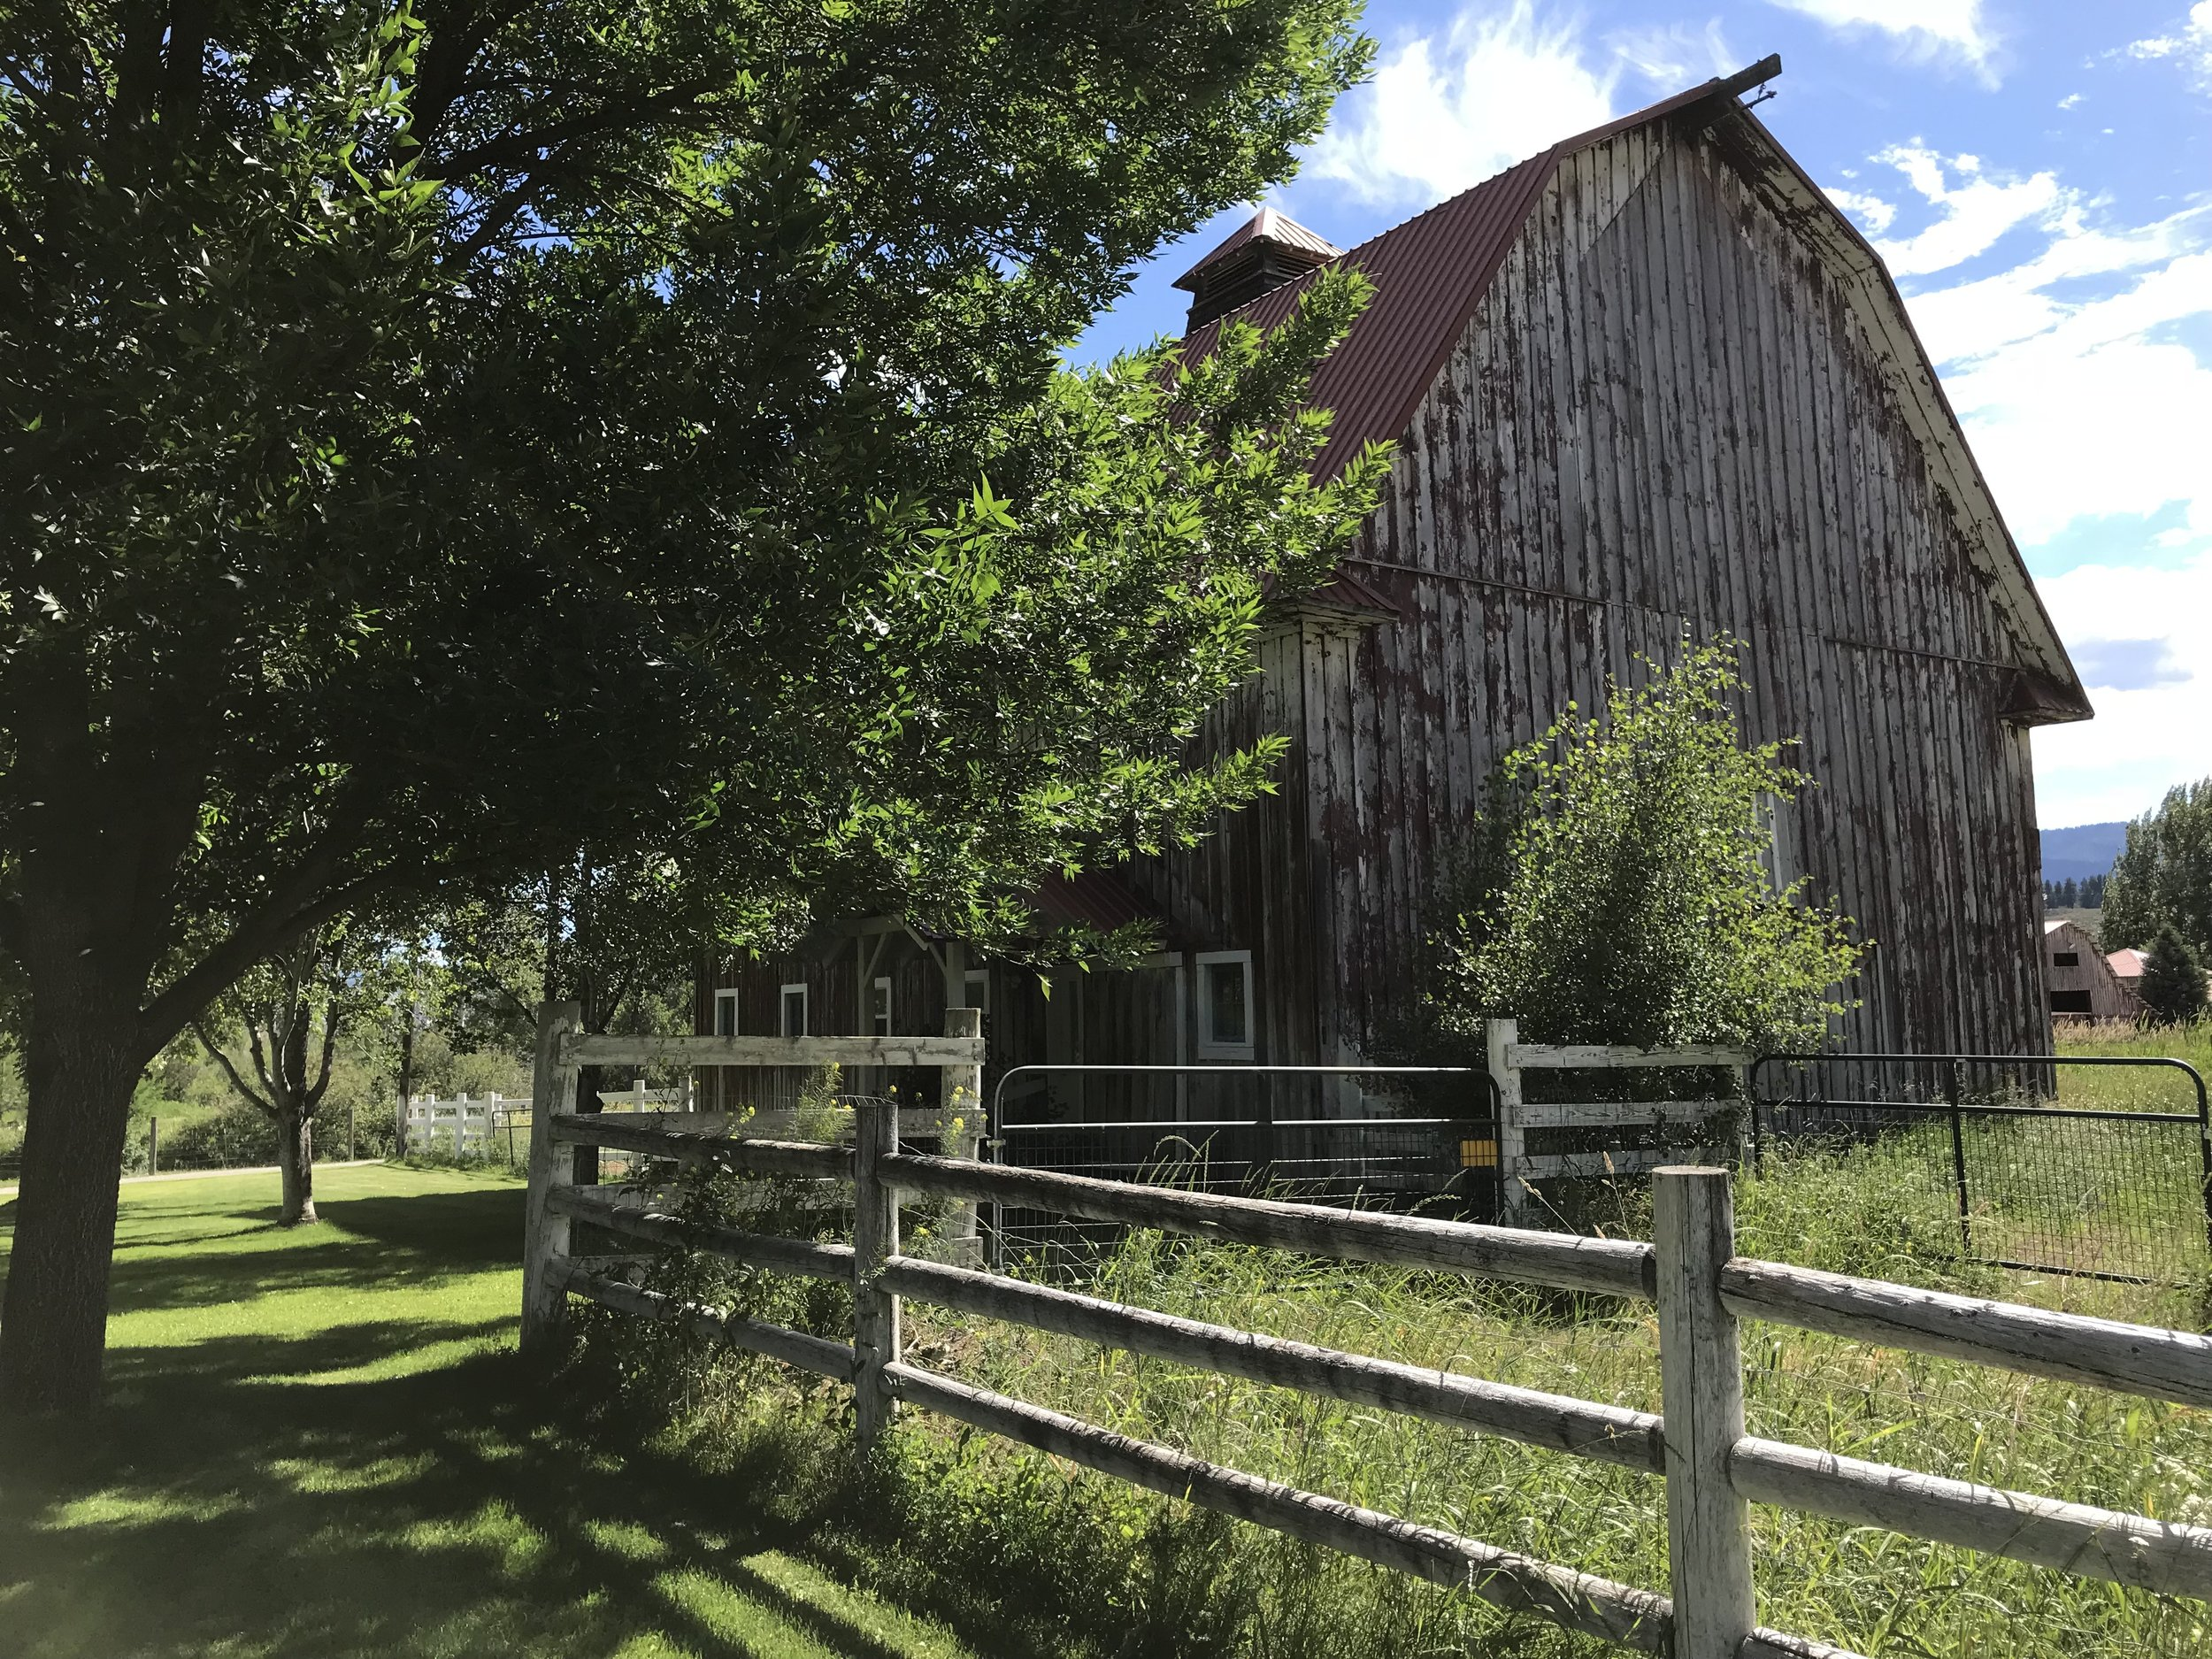 View of the barn from back porch